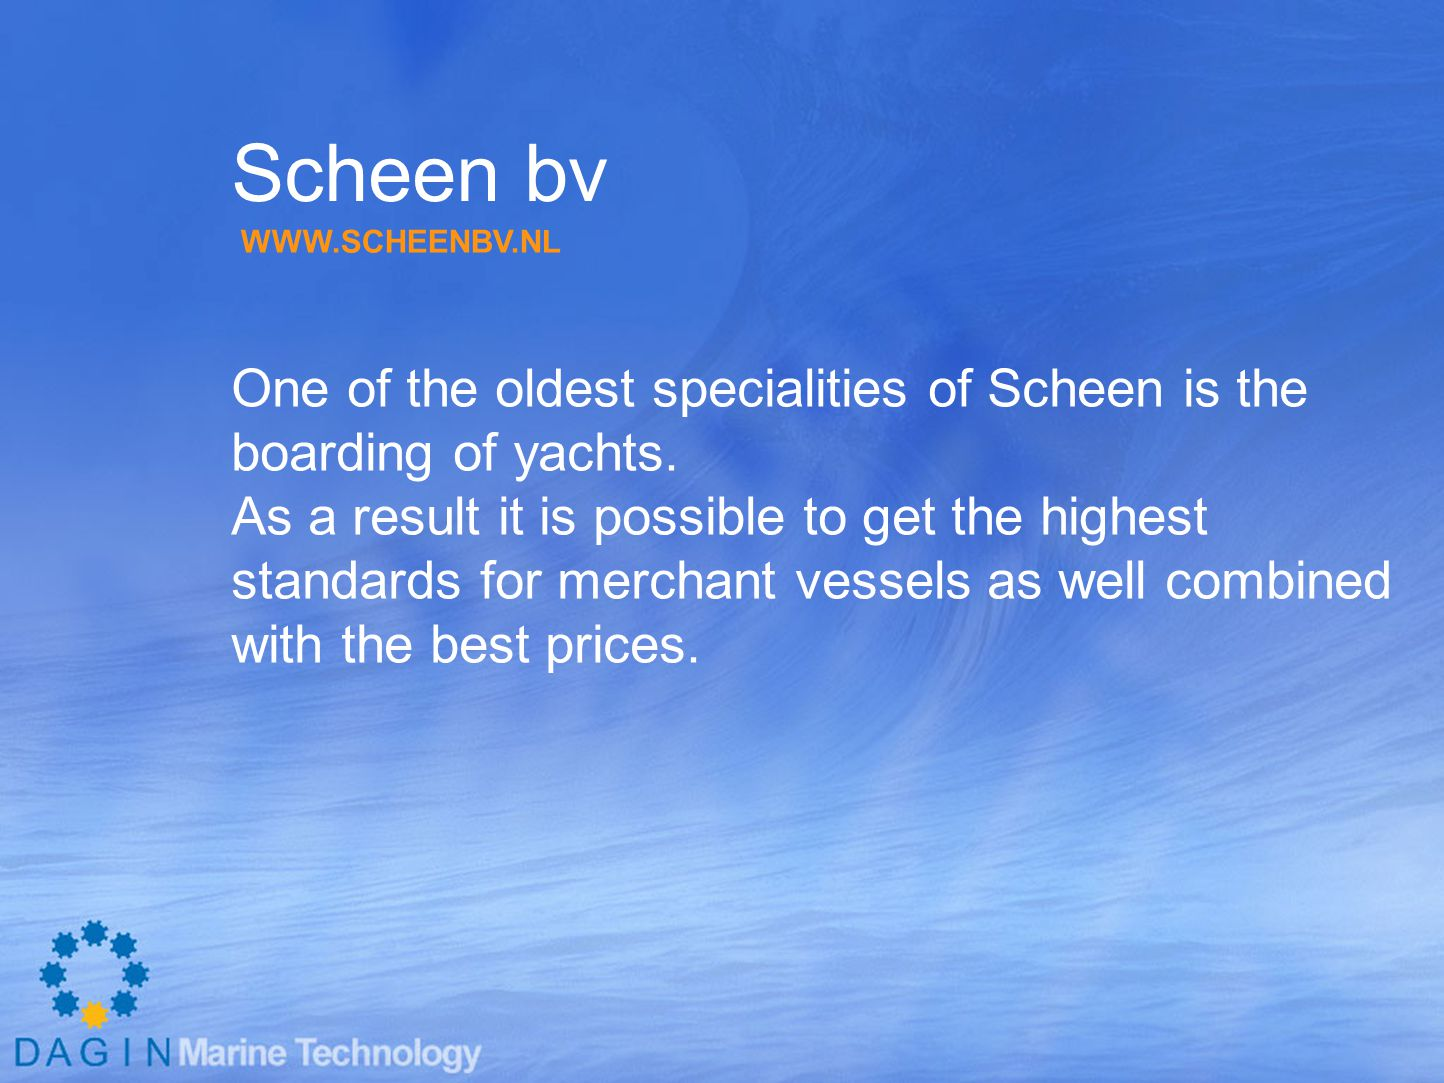 Scheen bv One of the oldest specialities of Scheen is the